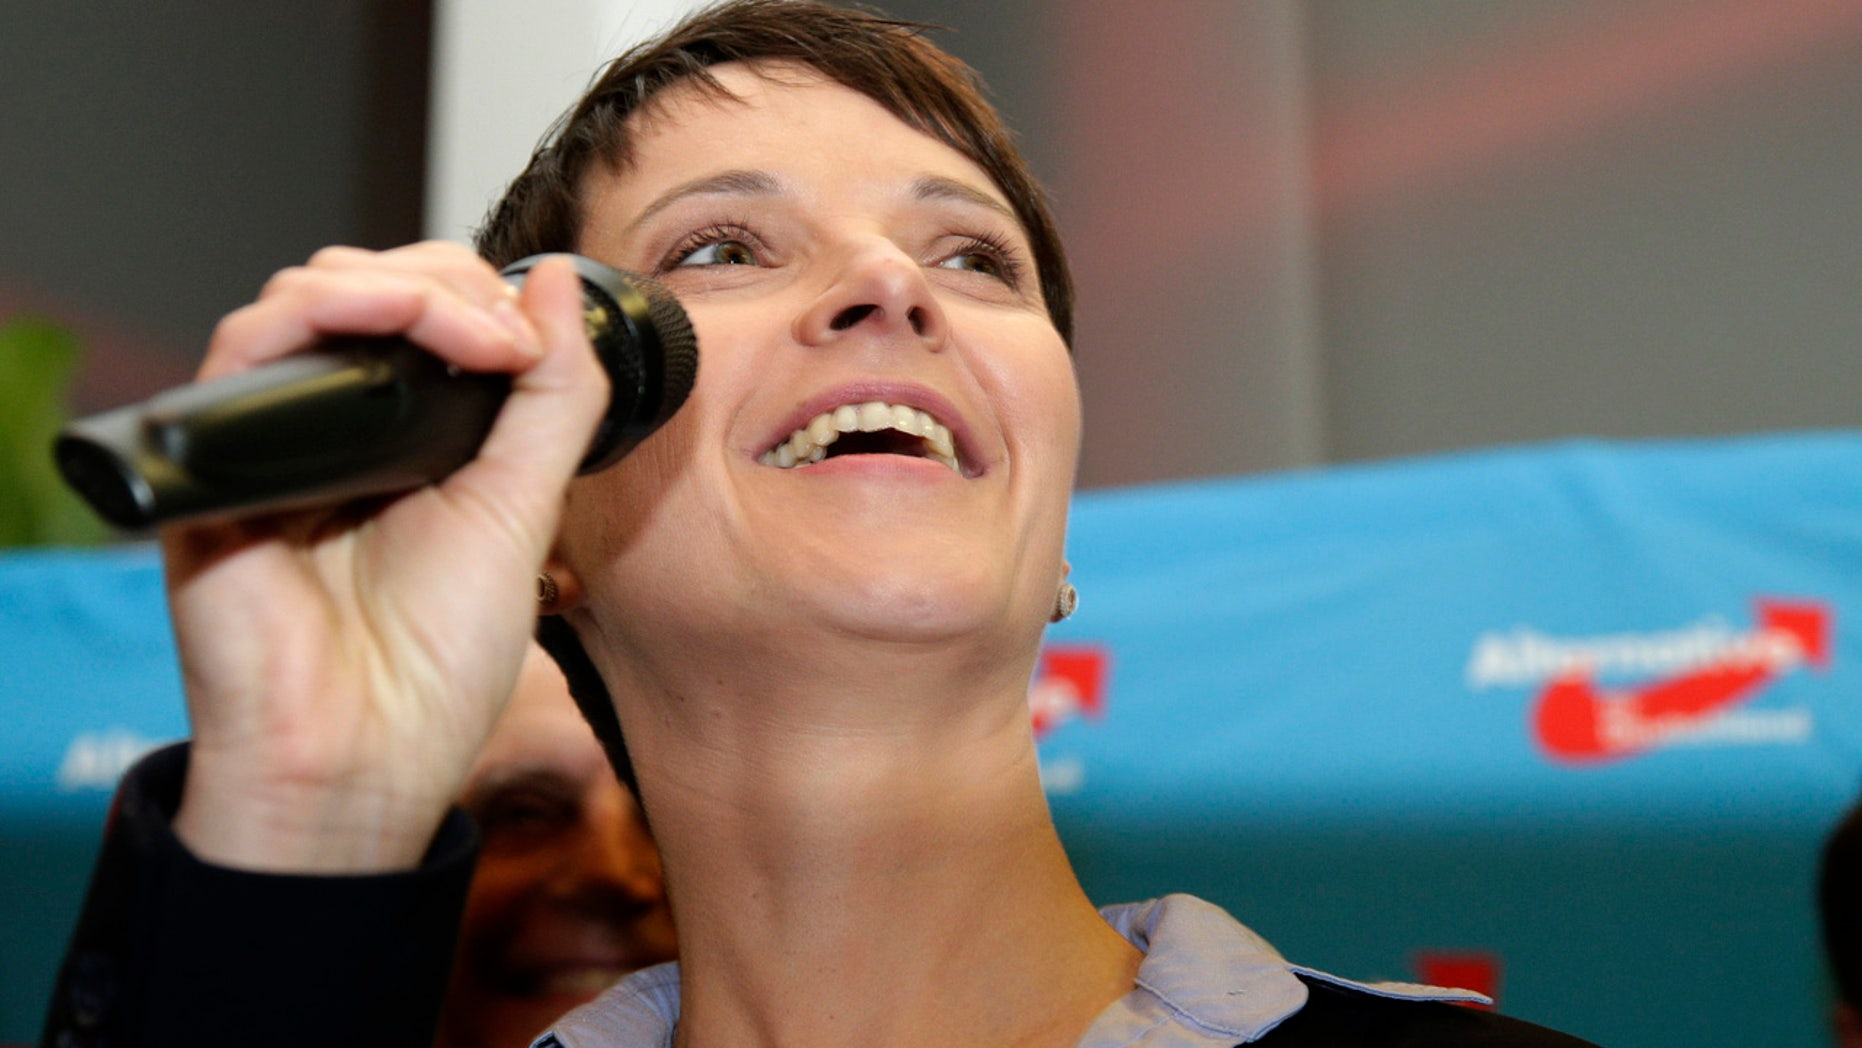 March 13, 2016: Frauke Petry, chairwoman of the right-populist AfD (Alternative for Germany) party, smiles as she speaks at a gathering after the closing of the state elections in the German federal states of Baden-Wuerttemberg, Rhineland-Palatinate and Saxony-Anhalt in Berlin. (AP Photo/Michael Sohn)